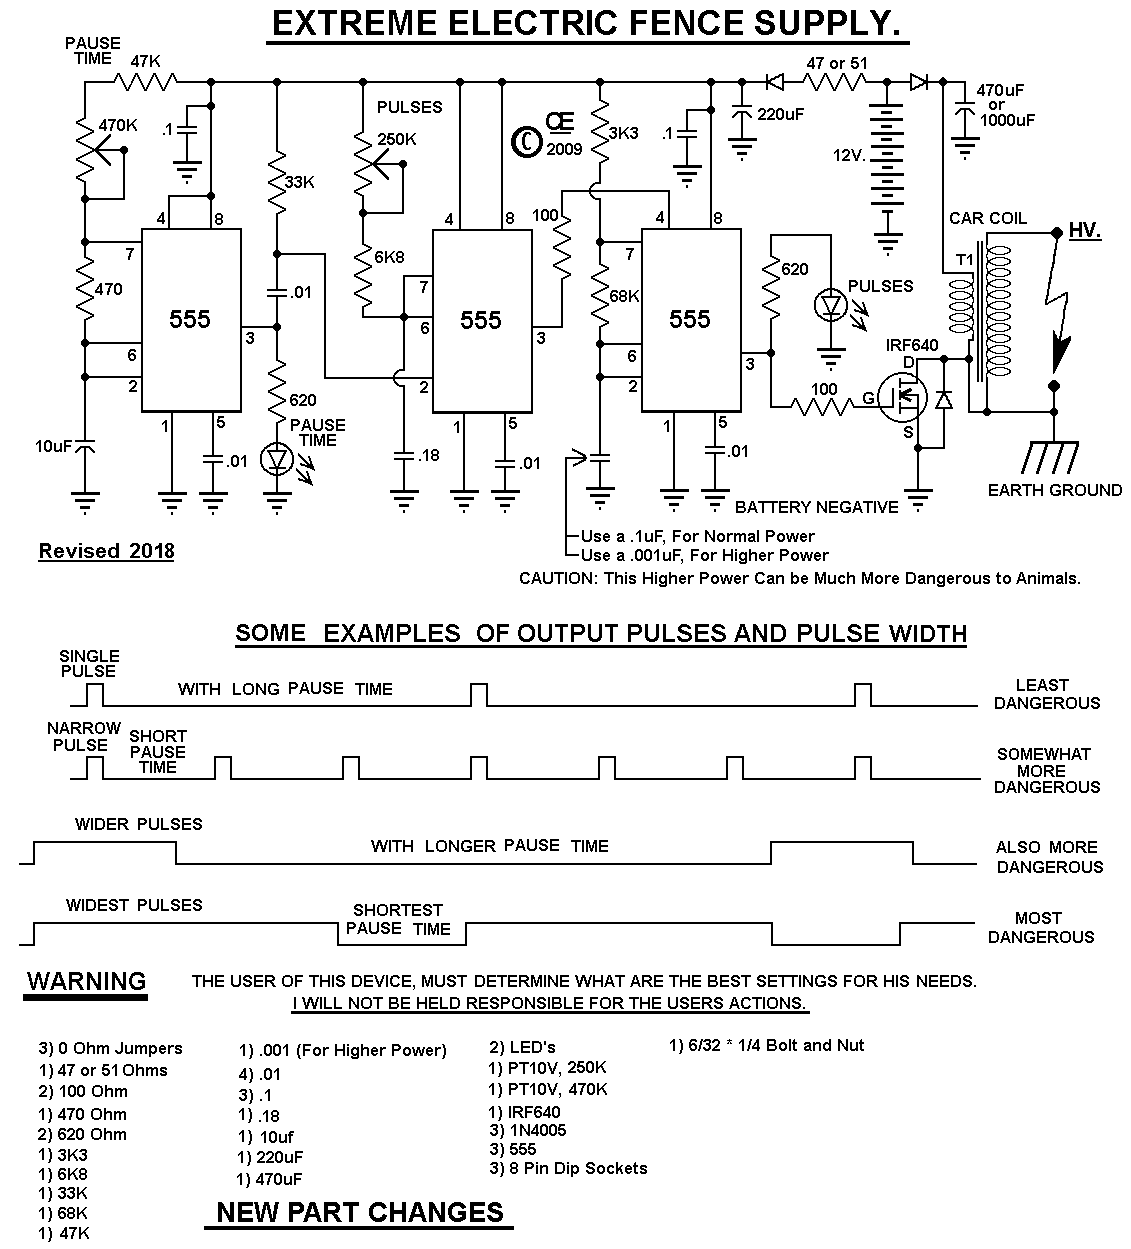 Circuit Diagram For Electric Fence Energizer Switch Revlimiternet Low Profile Headlight Wiring Hotter More Powerful Design Rh Chemelec Com Energiser